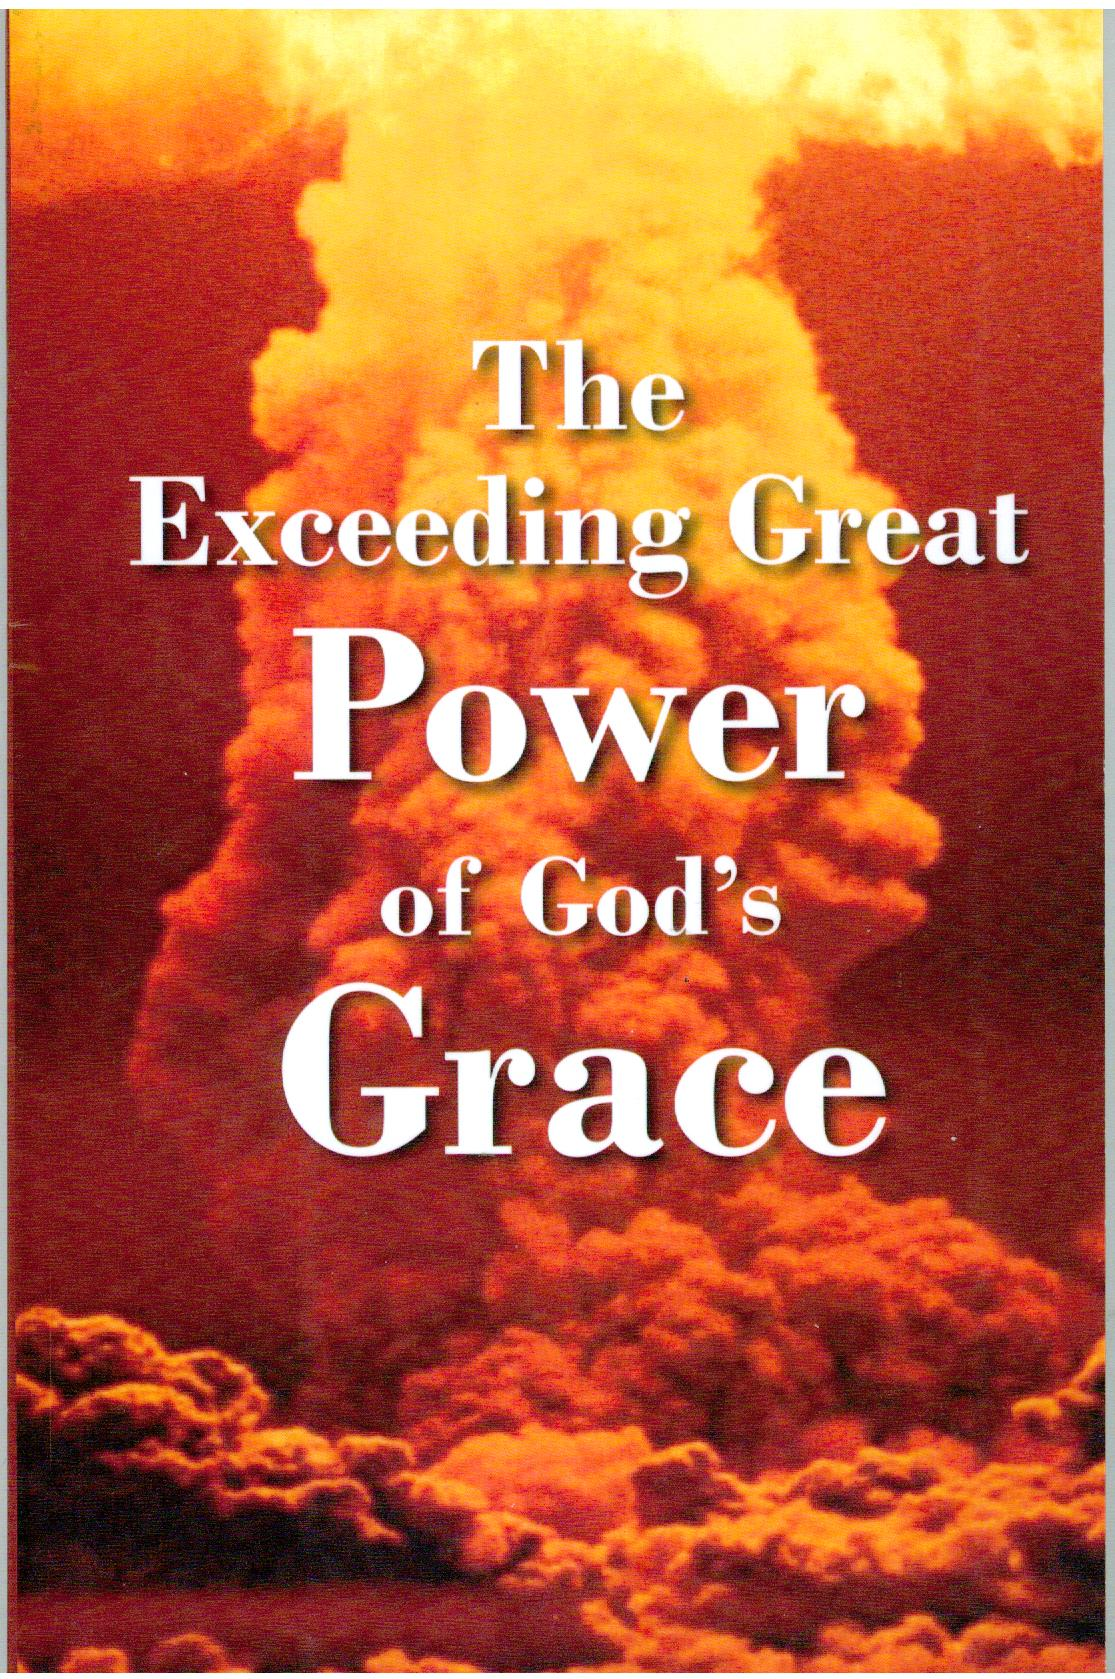 The Exceeding Great Power of God's Grace